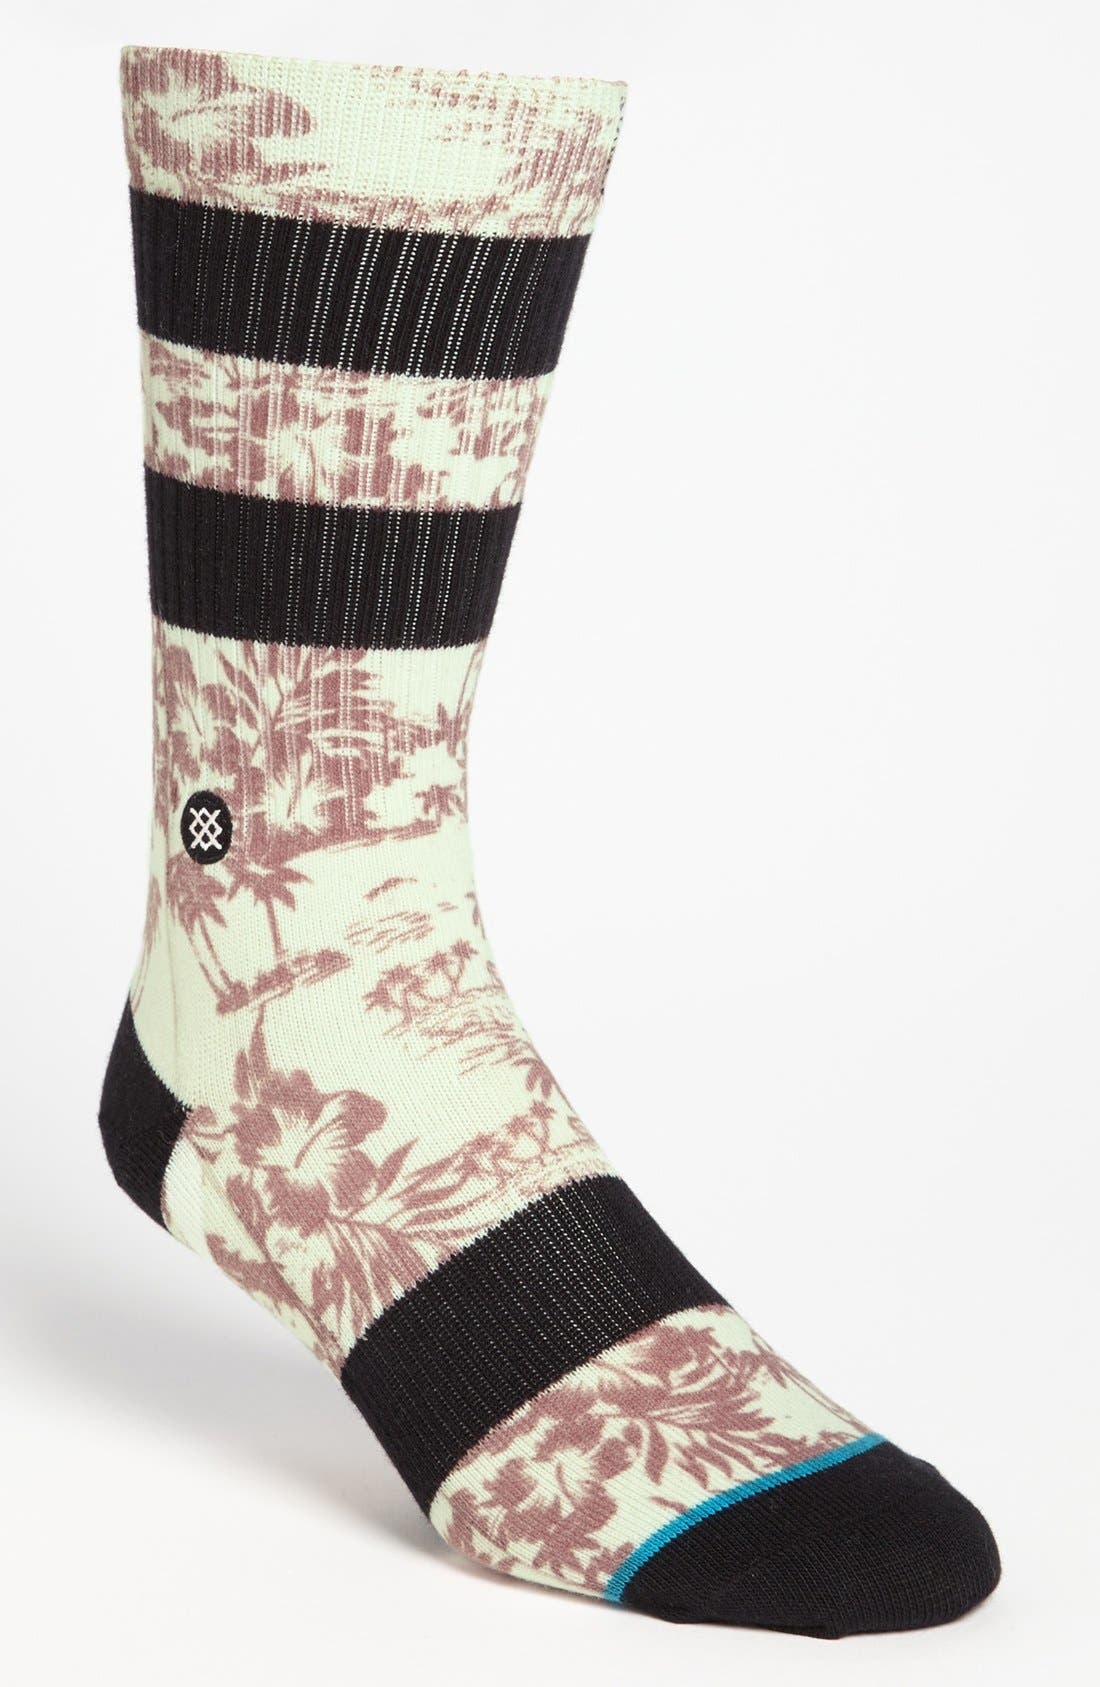 Alternate Image 1 Selected - Stance 'Waipio' Dress Socks